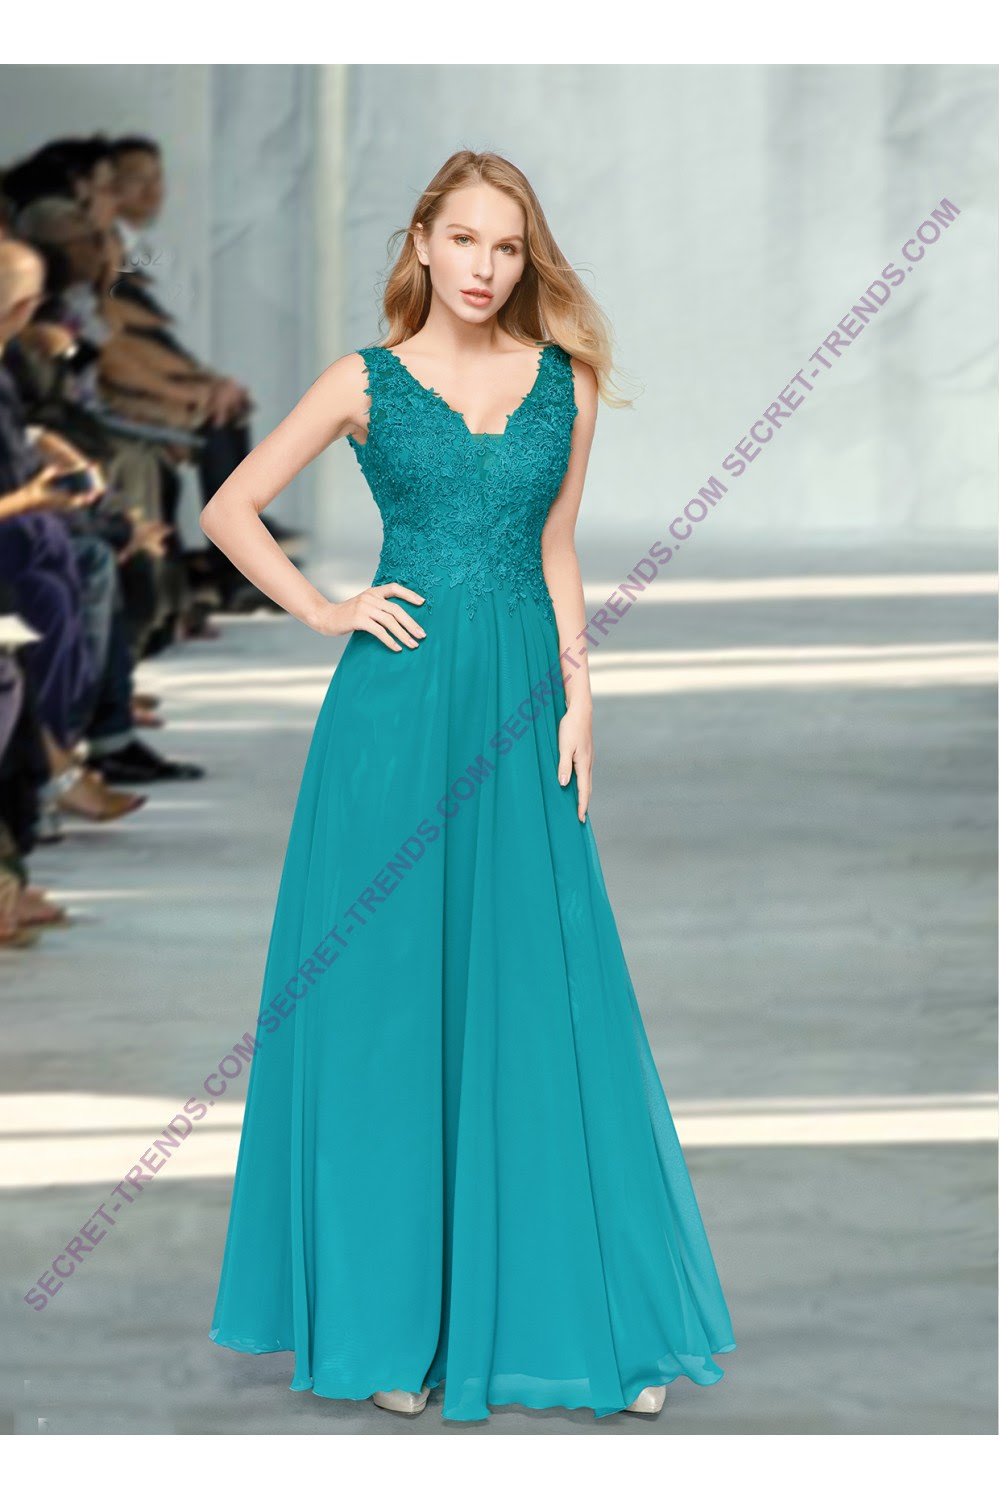 beautiful elegant chiffon evening dress a-line with top made